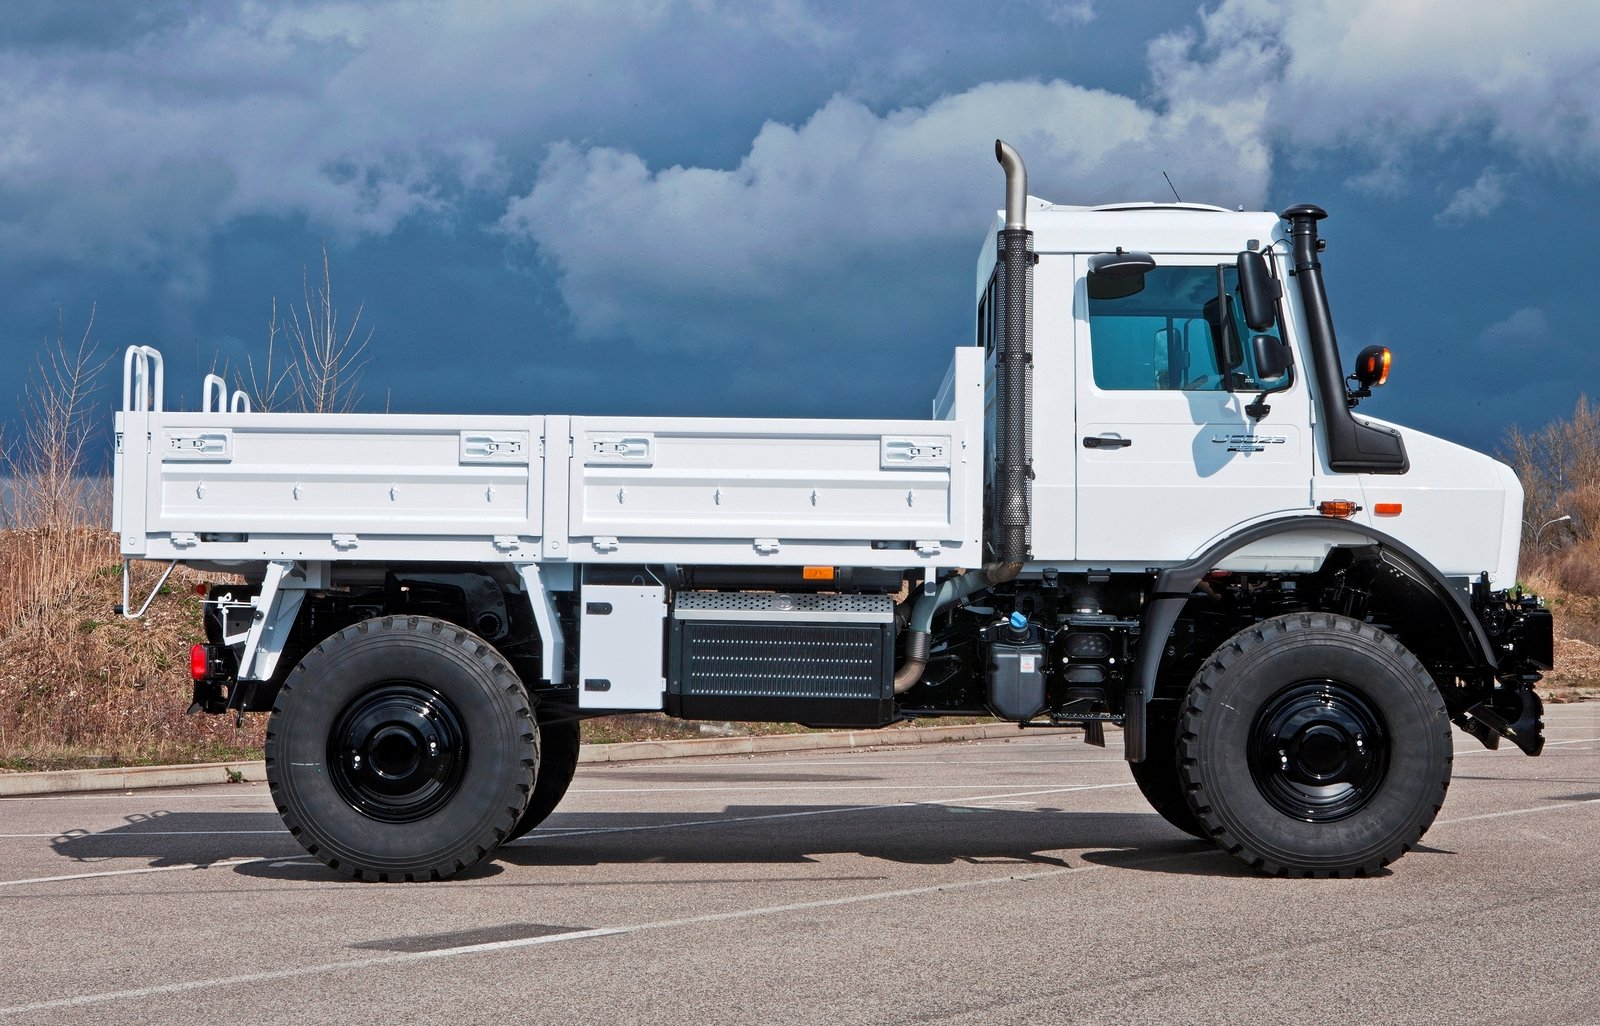 San Antonio Jeep >> 2014 Unimog Trucks For Sale.html | Autos Weblog